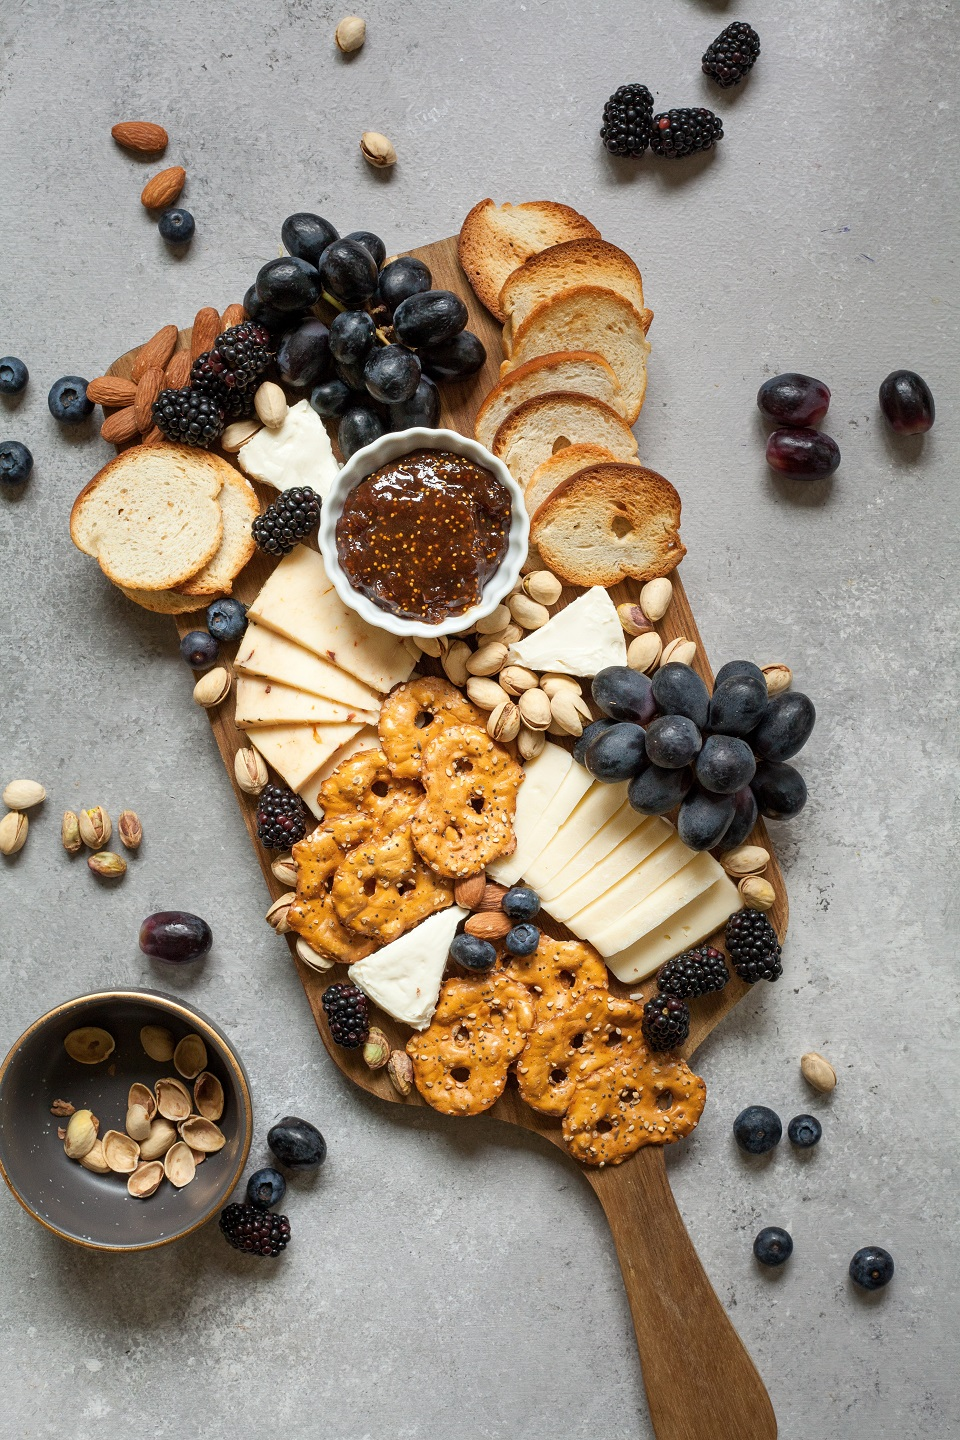 How To Create An Instagram-Worthy Cheeseboard: